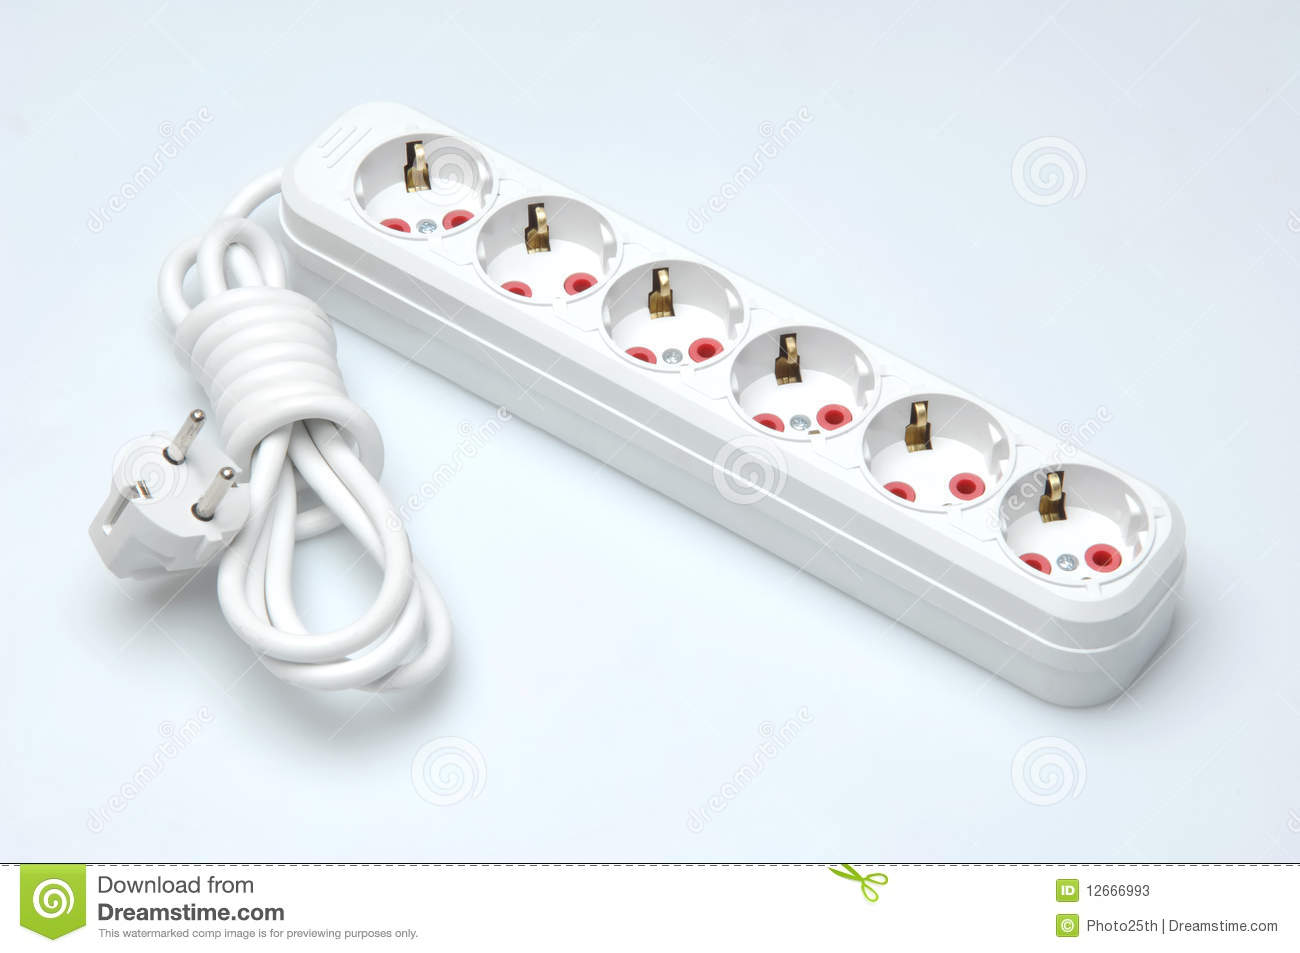 KOPPLA Extension cord White 13 AMP - IKEA